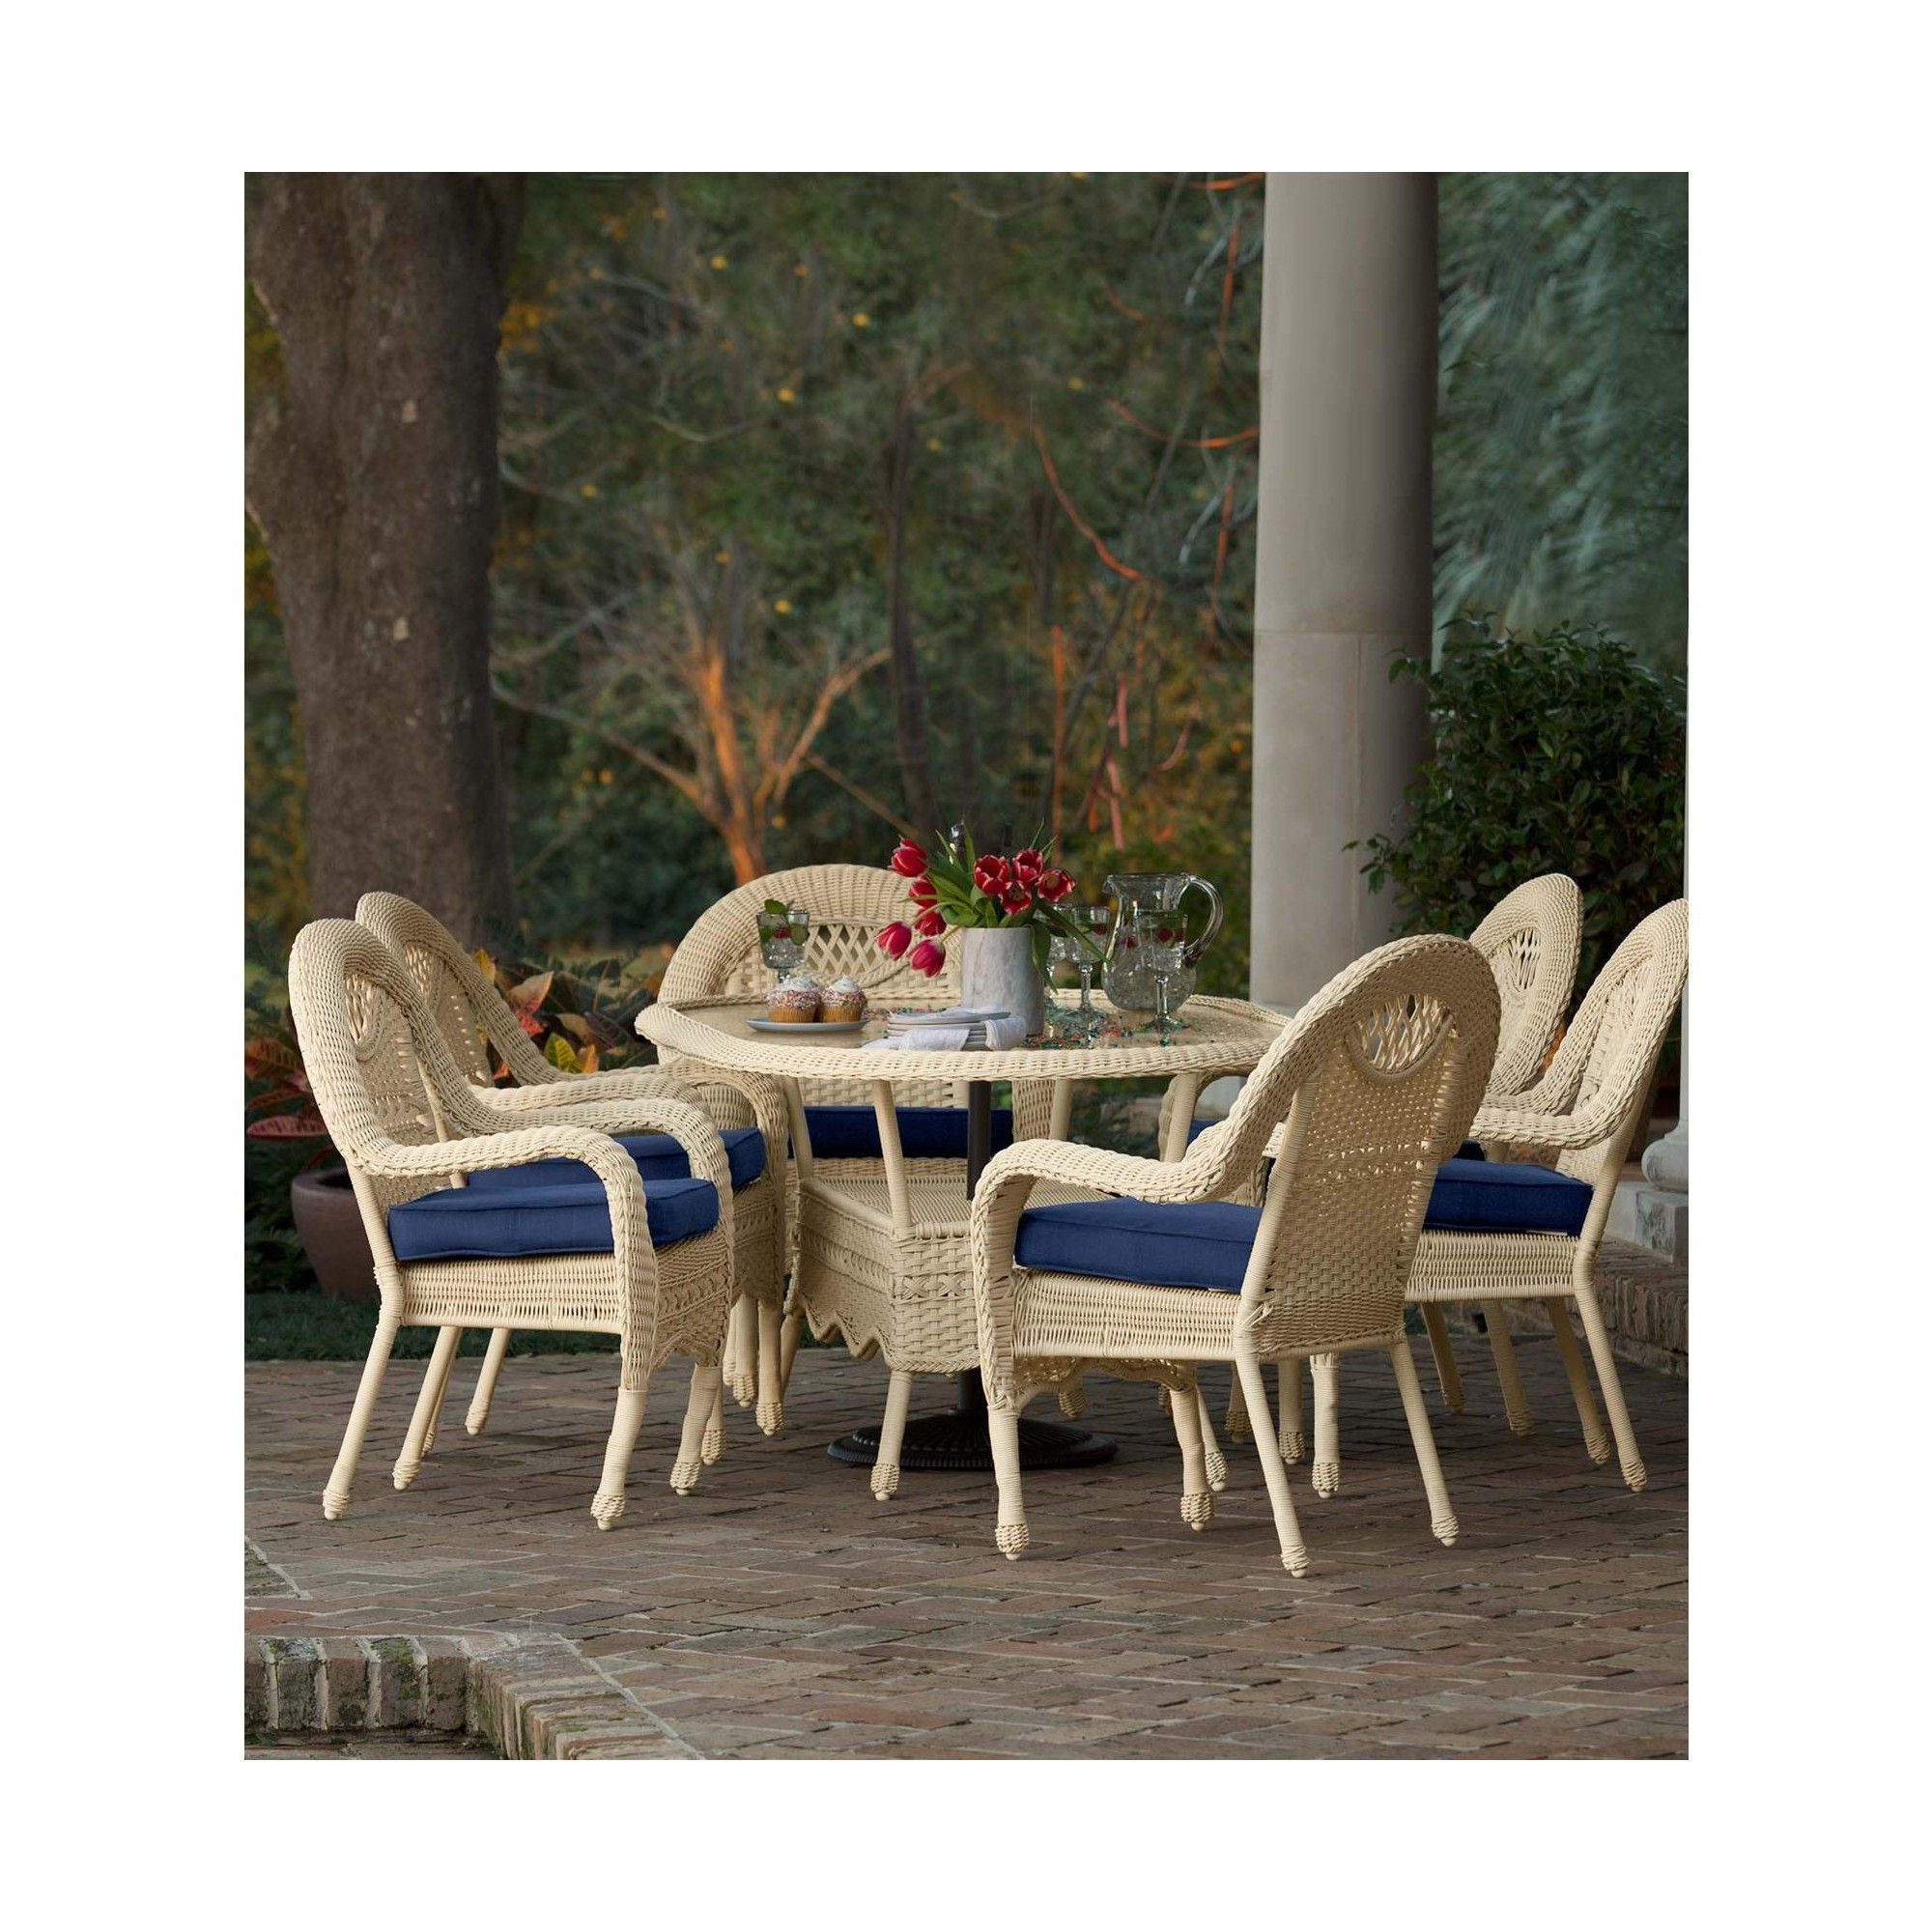 Pleasing Prospect Hill Oval Dining Table And 6 Chairs Set Cloud Machost Co Dining Chair Design Ideas Machostcouk